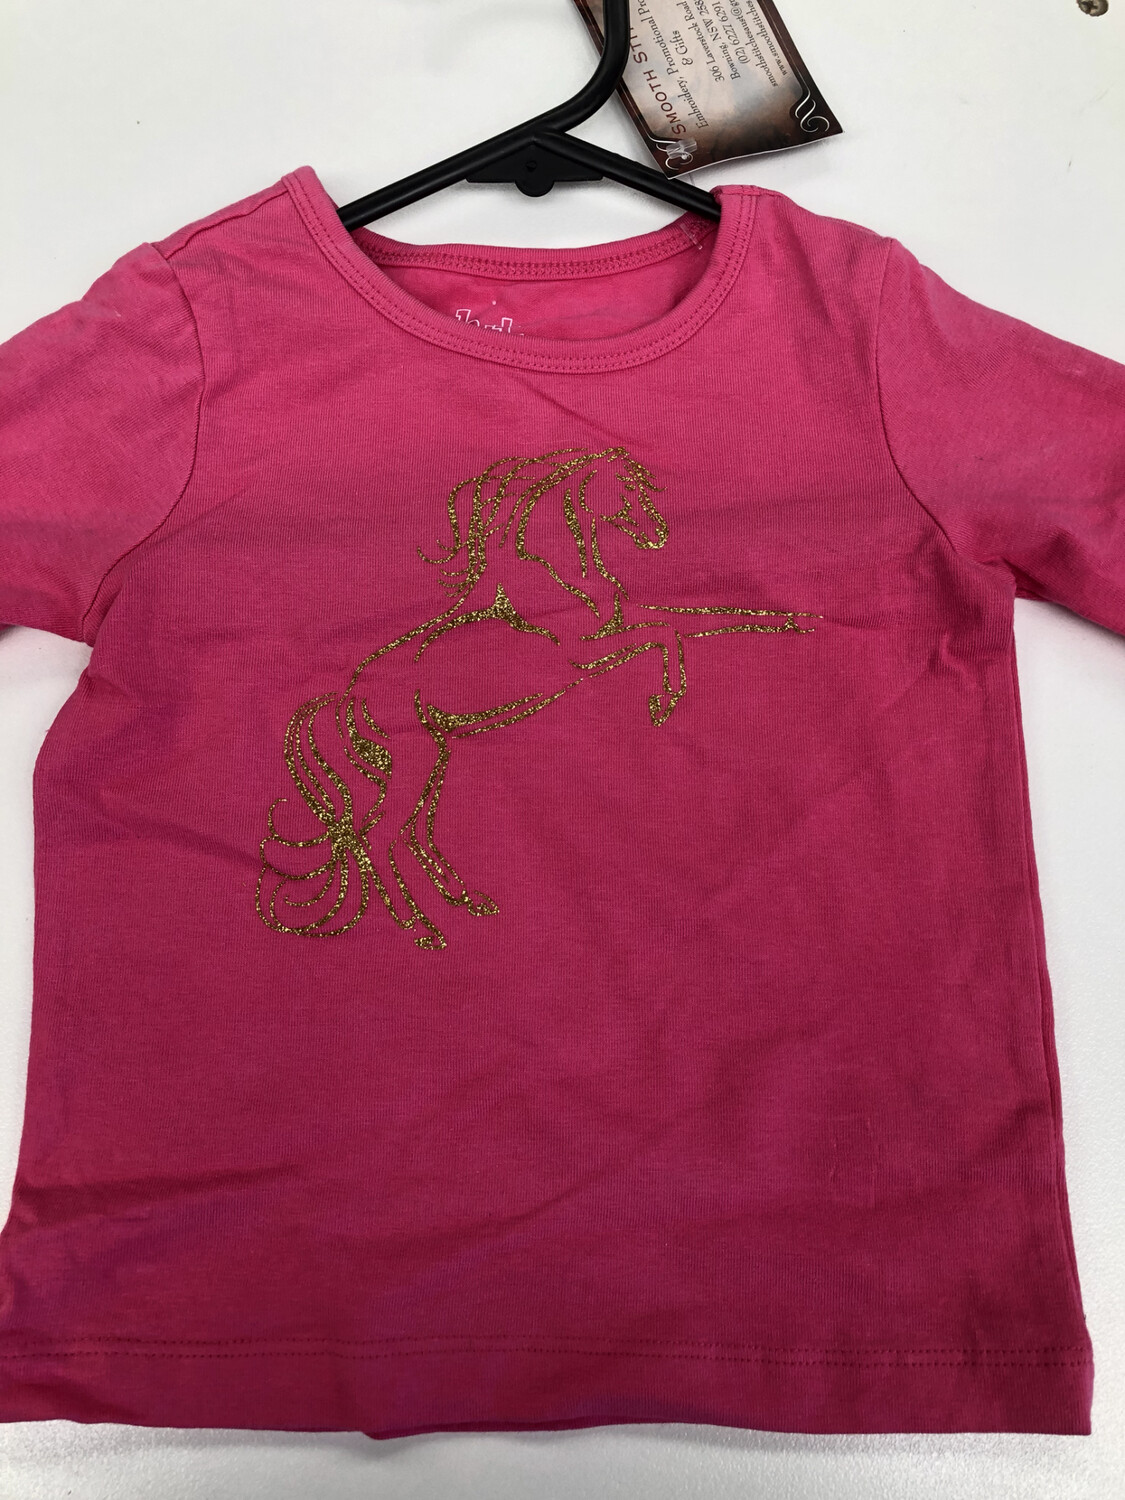 Girls Size 1 Long Sleeve Rearing Horse